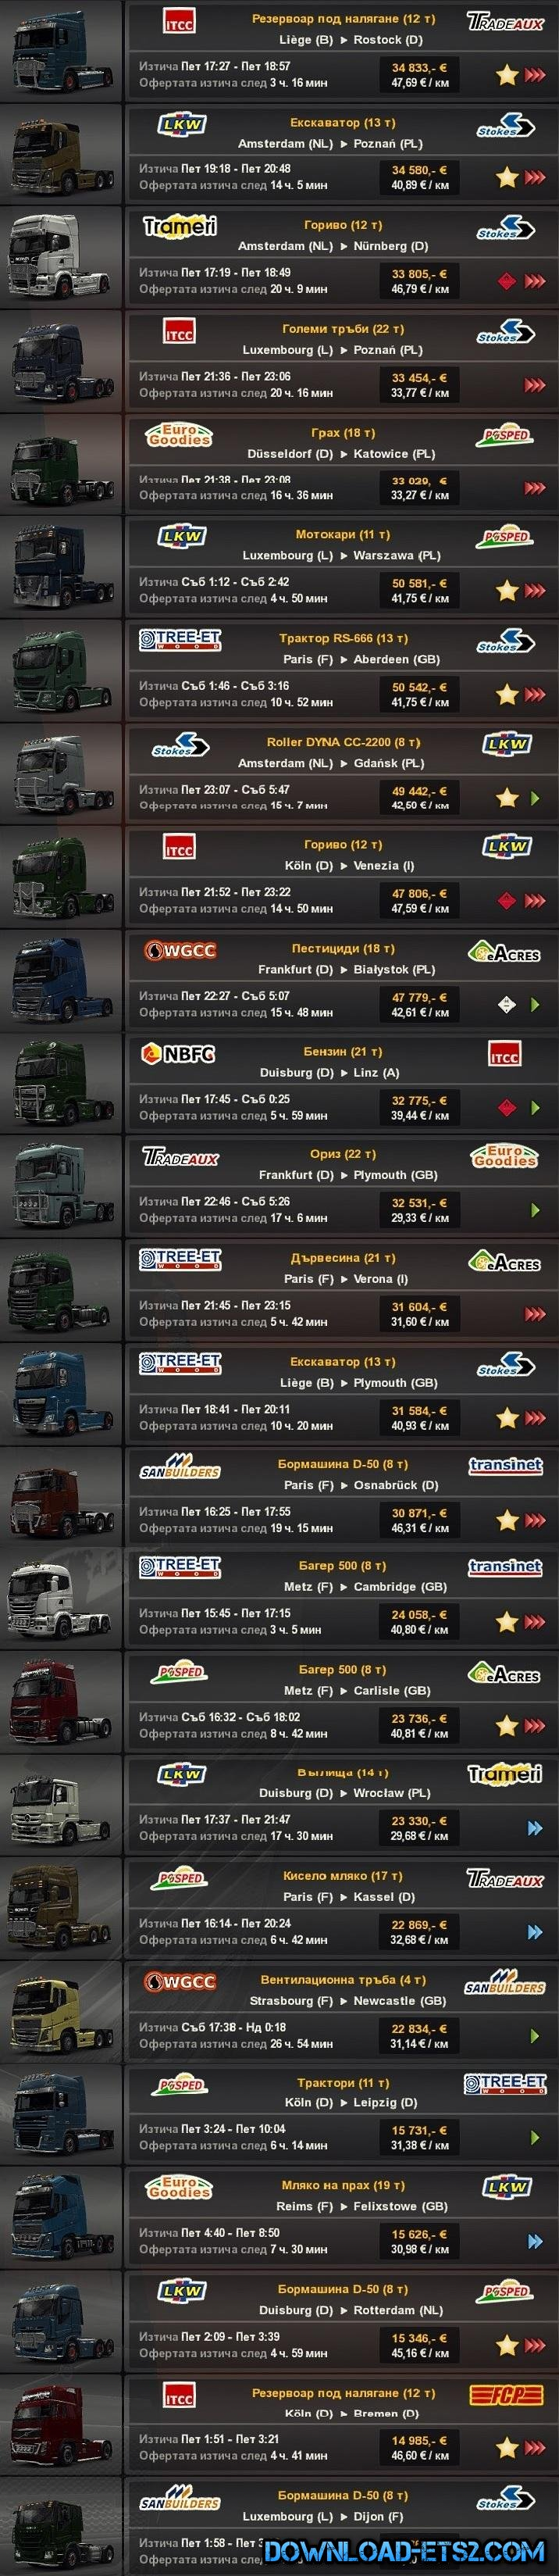 QUICK JOBS TUNED TRUCK V3 for patch 1.17